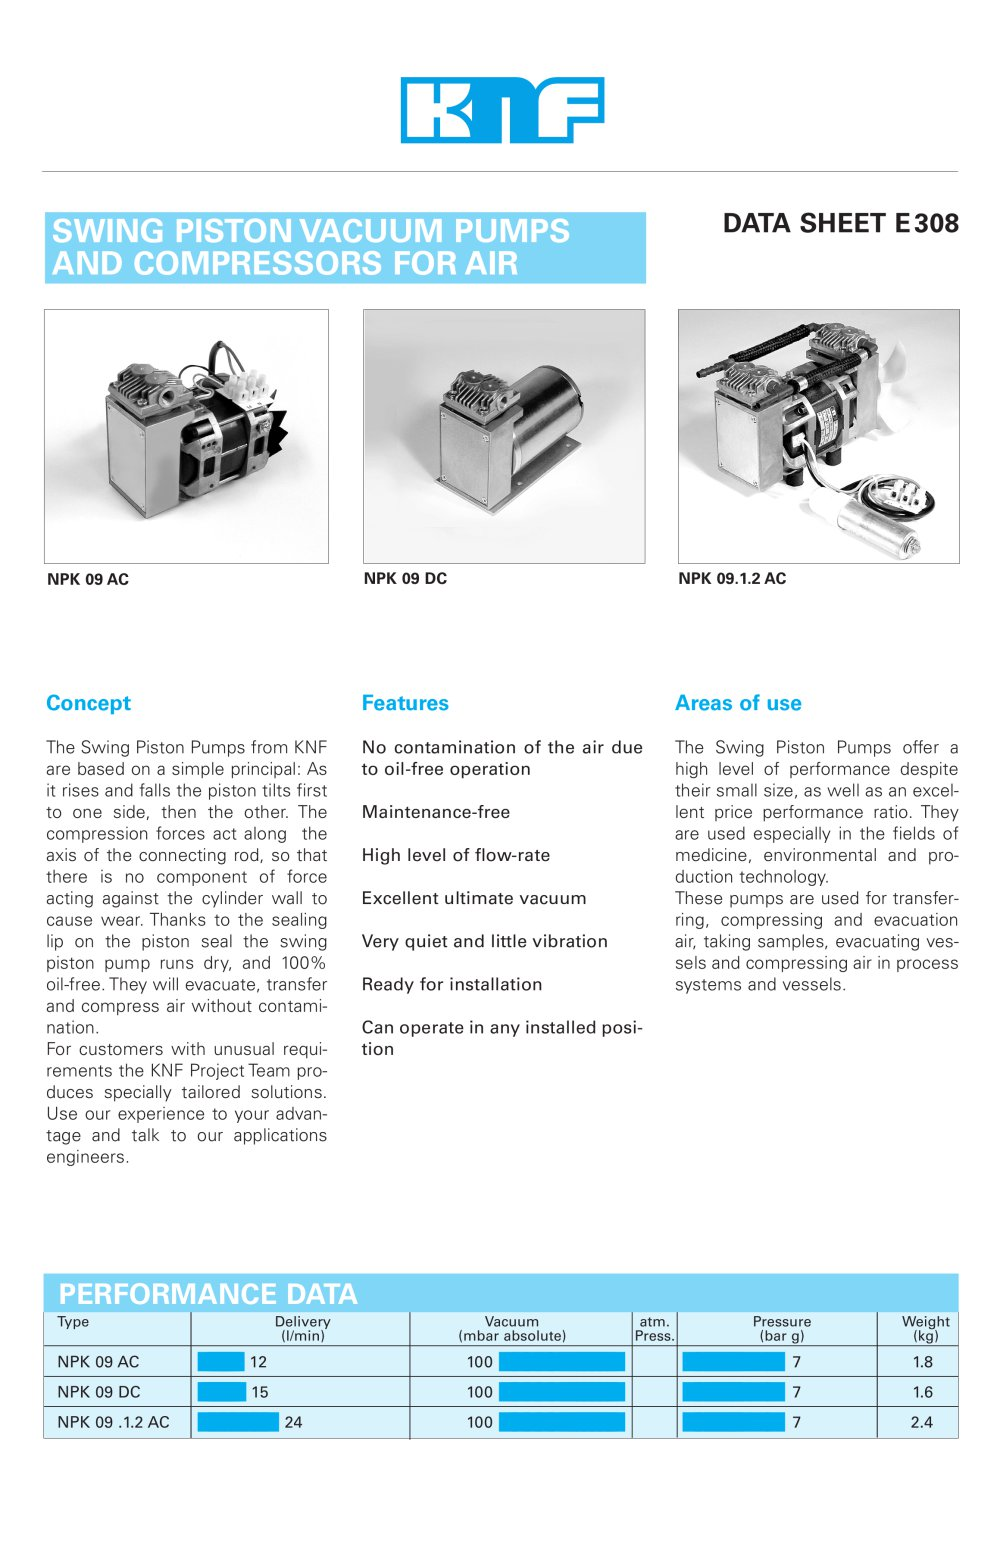 Swing Piston Vacuum Pumps And Compressors For Air Knf Pdf Pump Diagram Or Only The 1 4 Pages